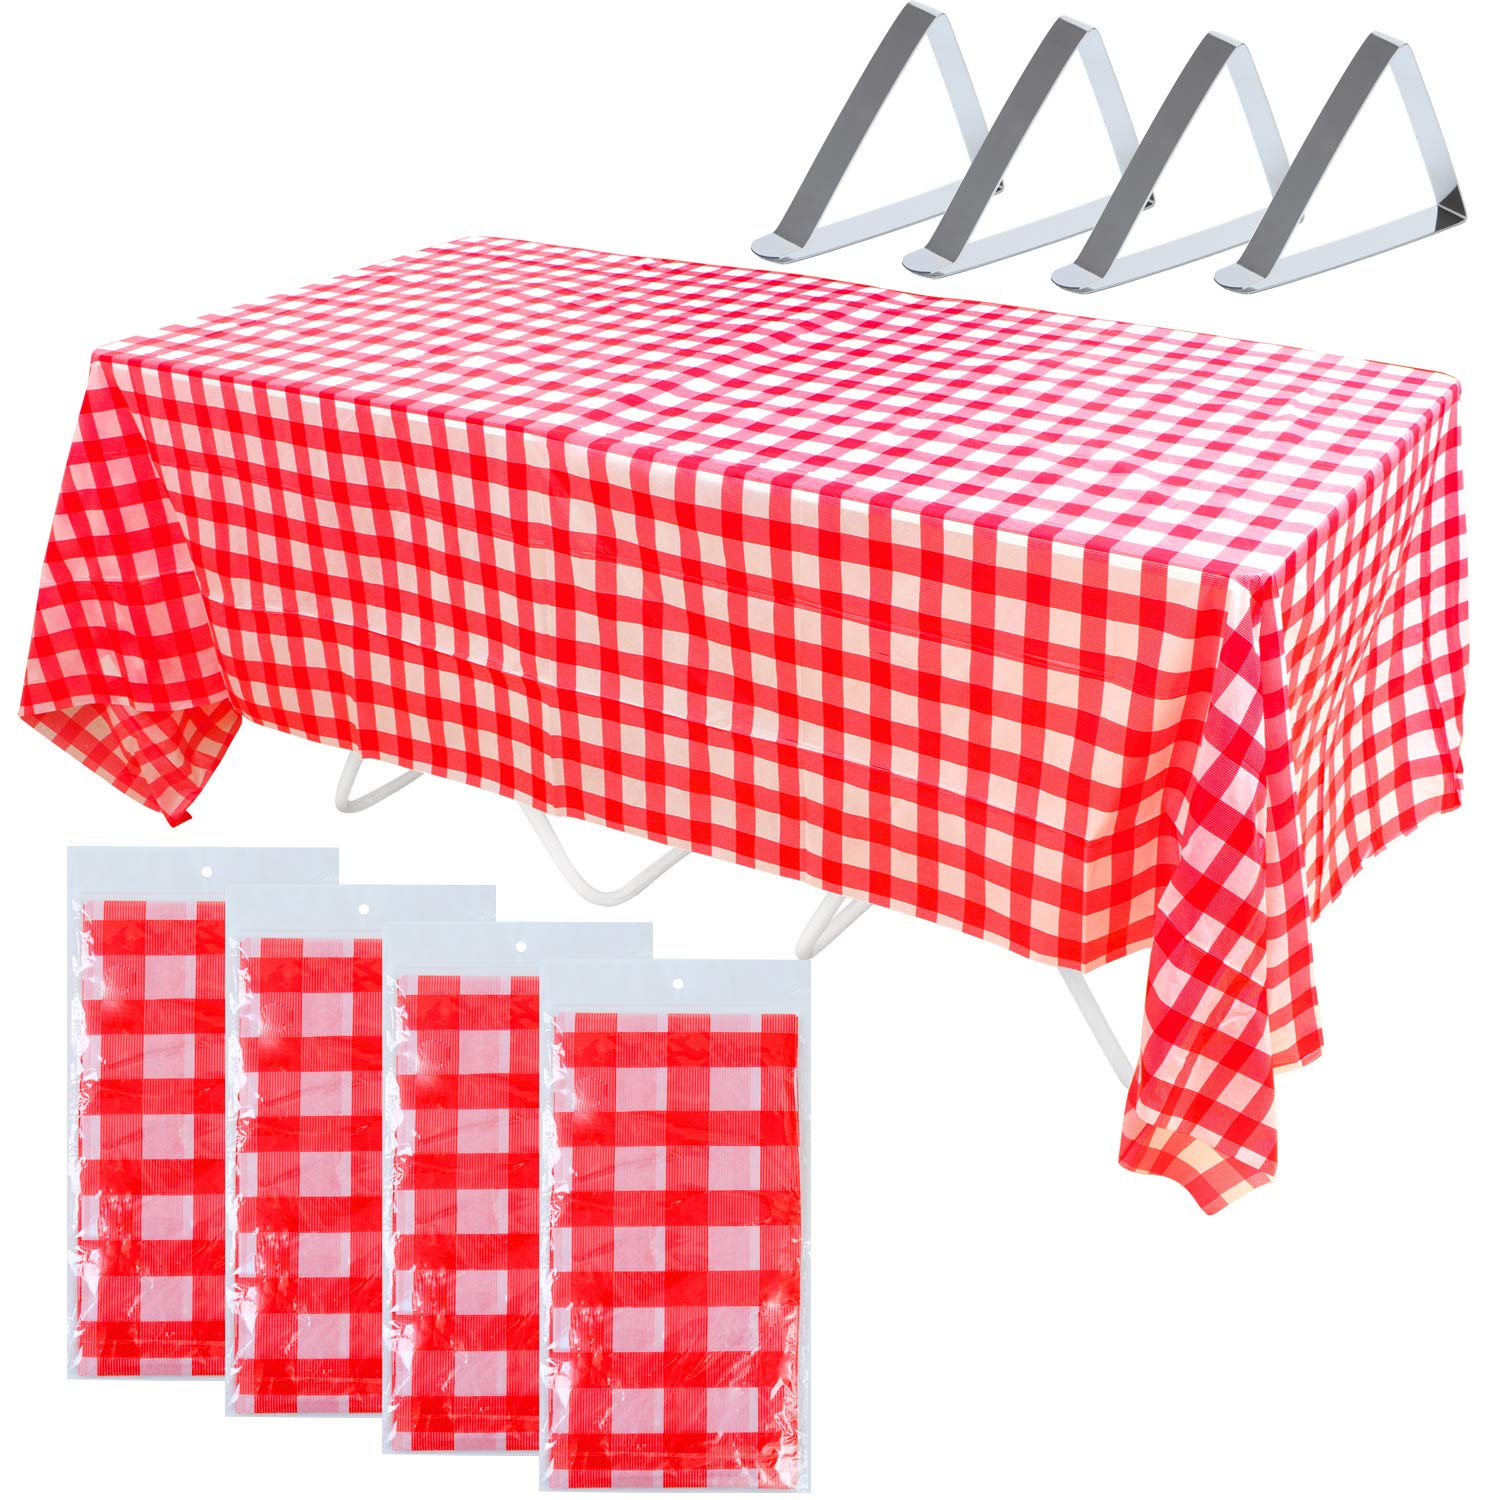 Keriber 4 Pack Plastic Red and White Checkered Tablecloths Tablecovers